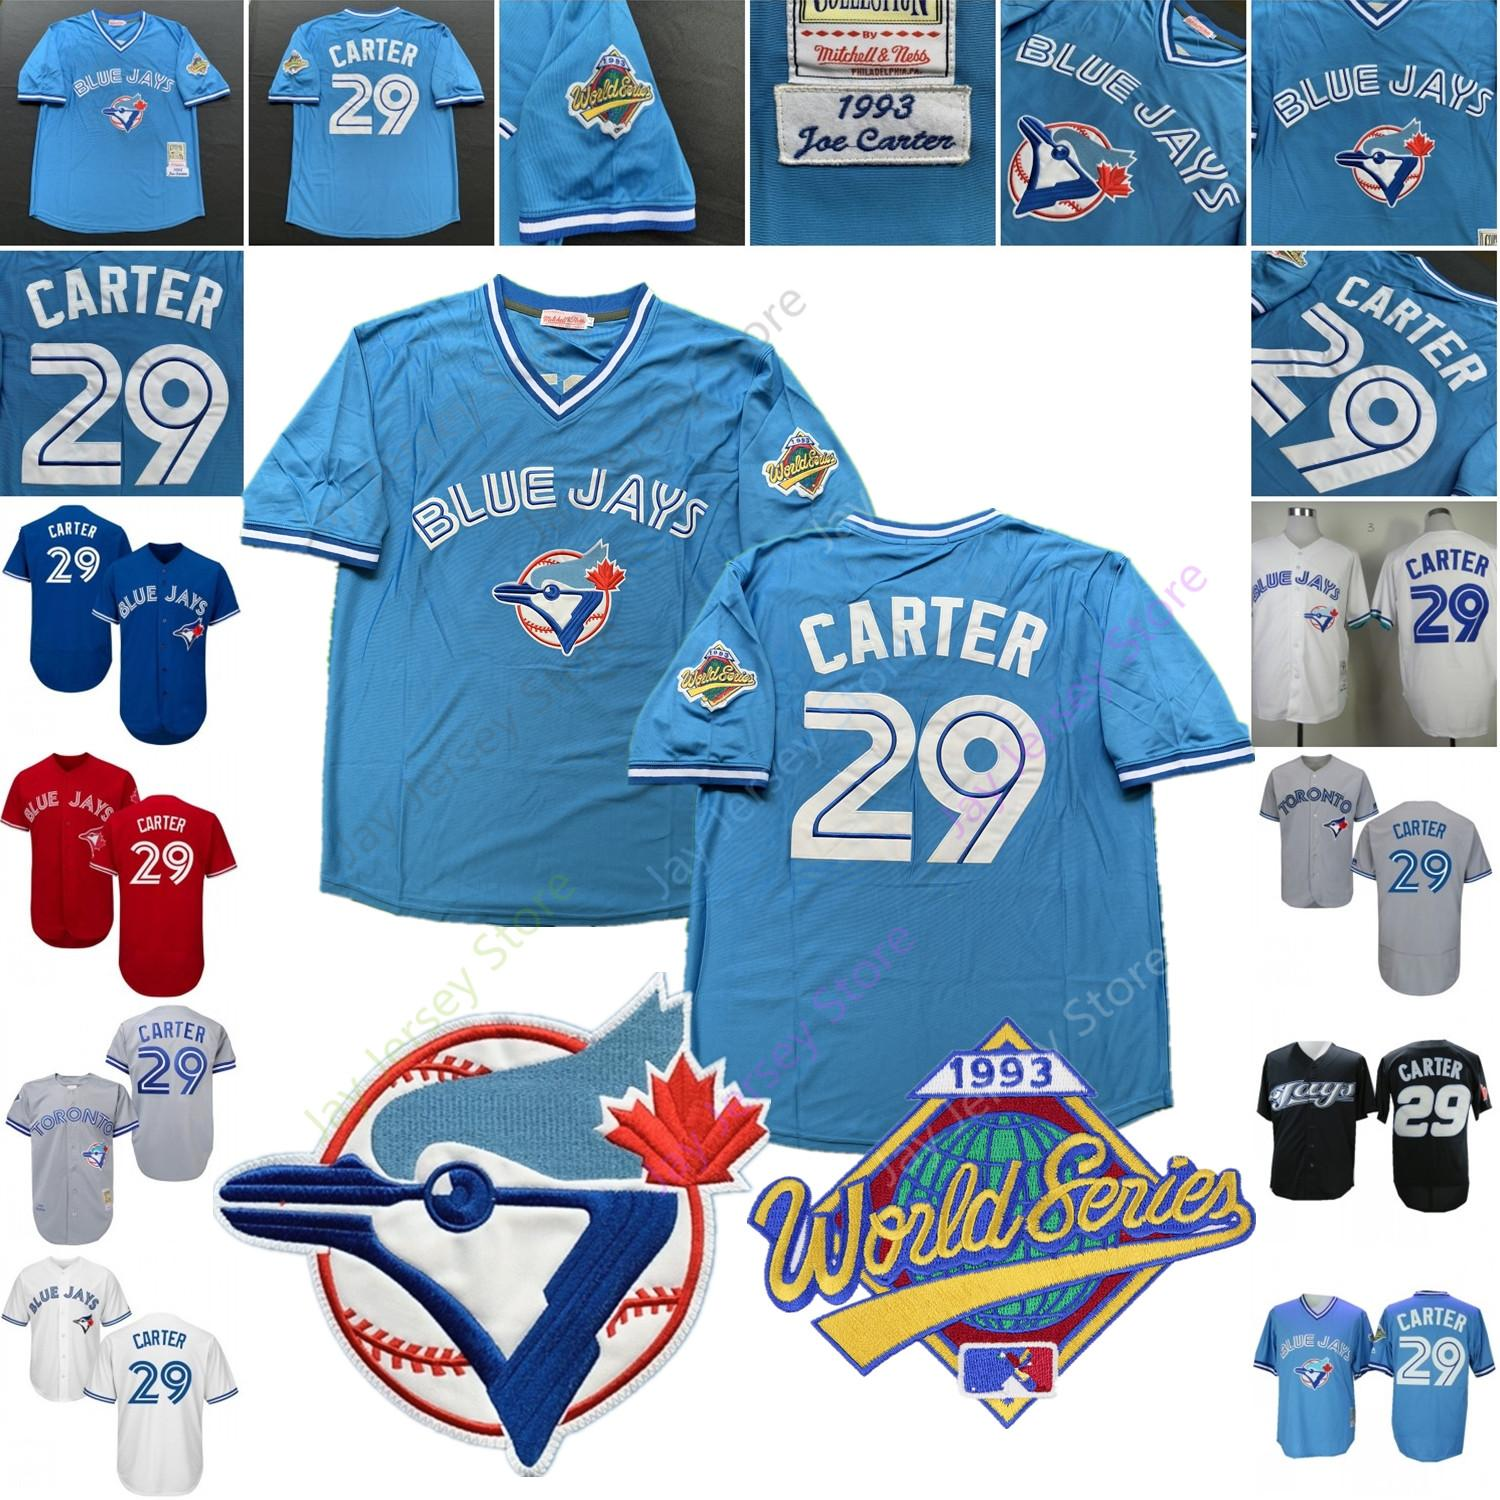 the latest 343ae 4064f Joe Carter Jersey MN Cooperstown 1993 WS World Series Toronto Baseball Blue  Jays Home Away White Blue Grey Red Black All Stitched